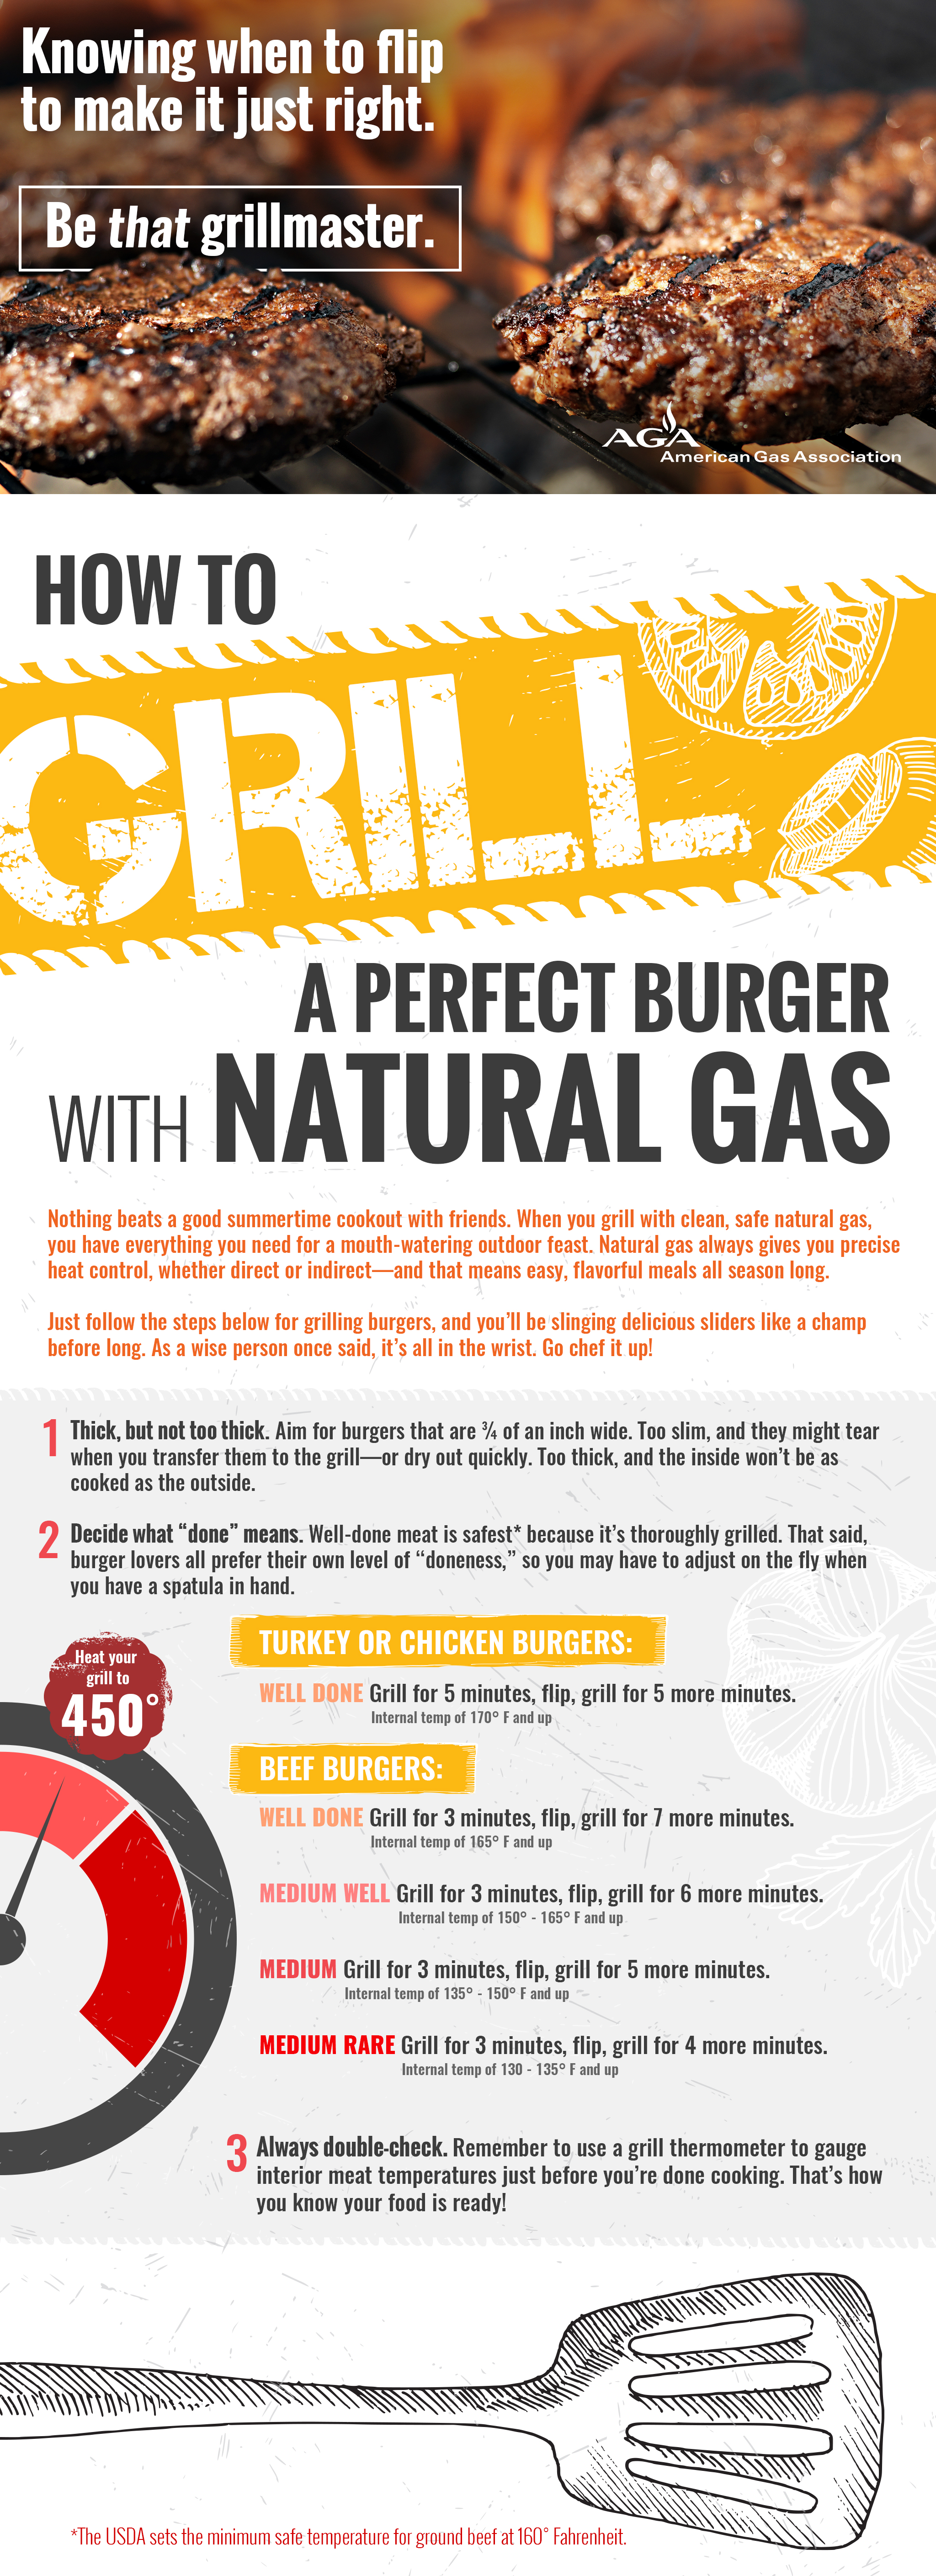 How to grill a perfect burger with natural gas